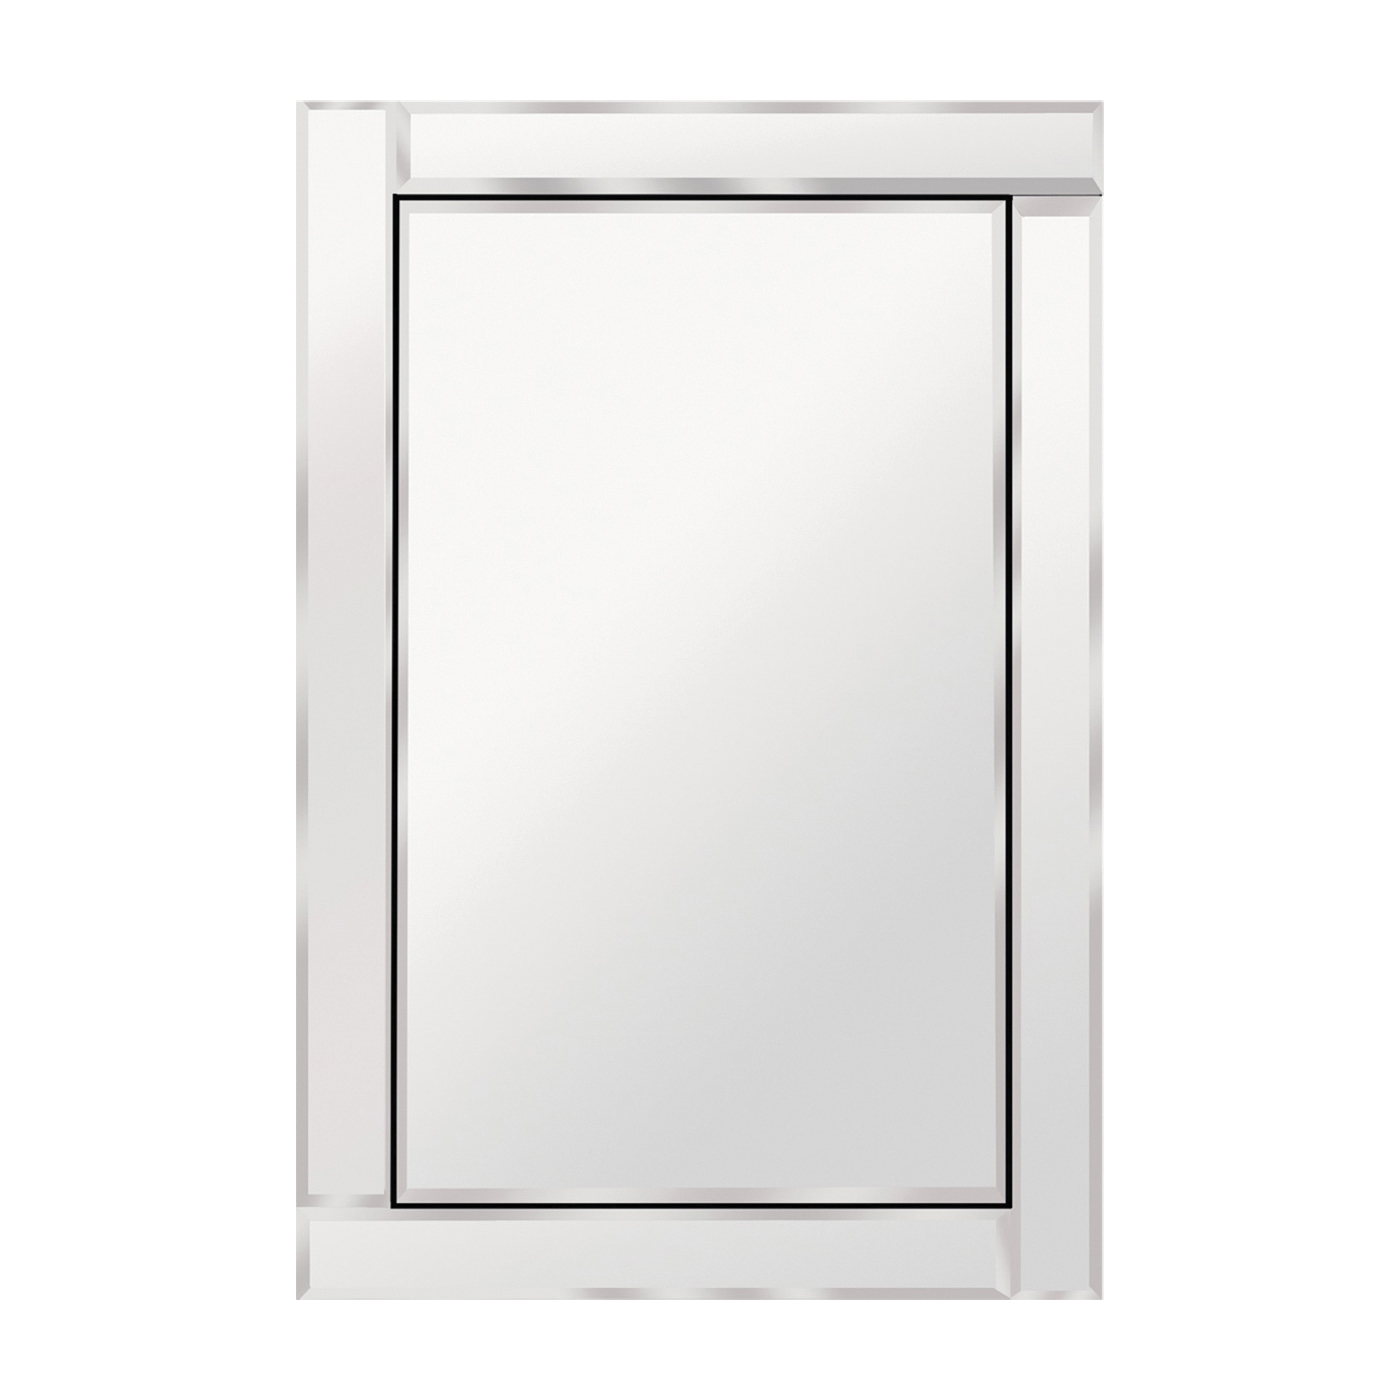 Picture of RENIN 200240 Brazing Frameless Fashion Mirror, 31 in W, 24 in H